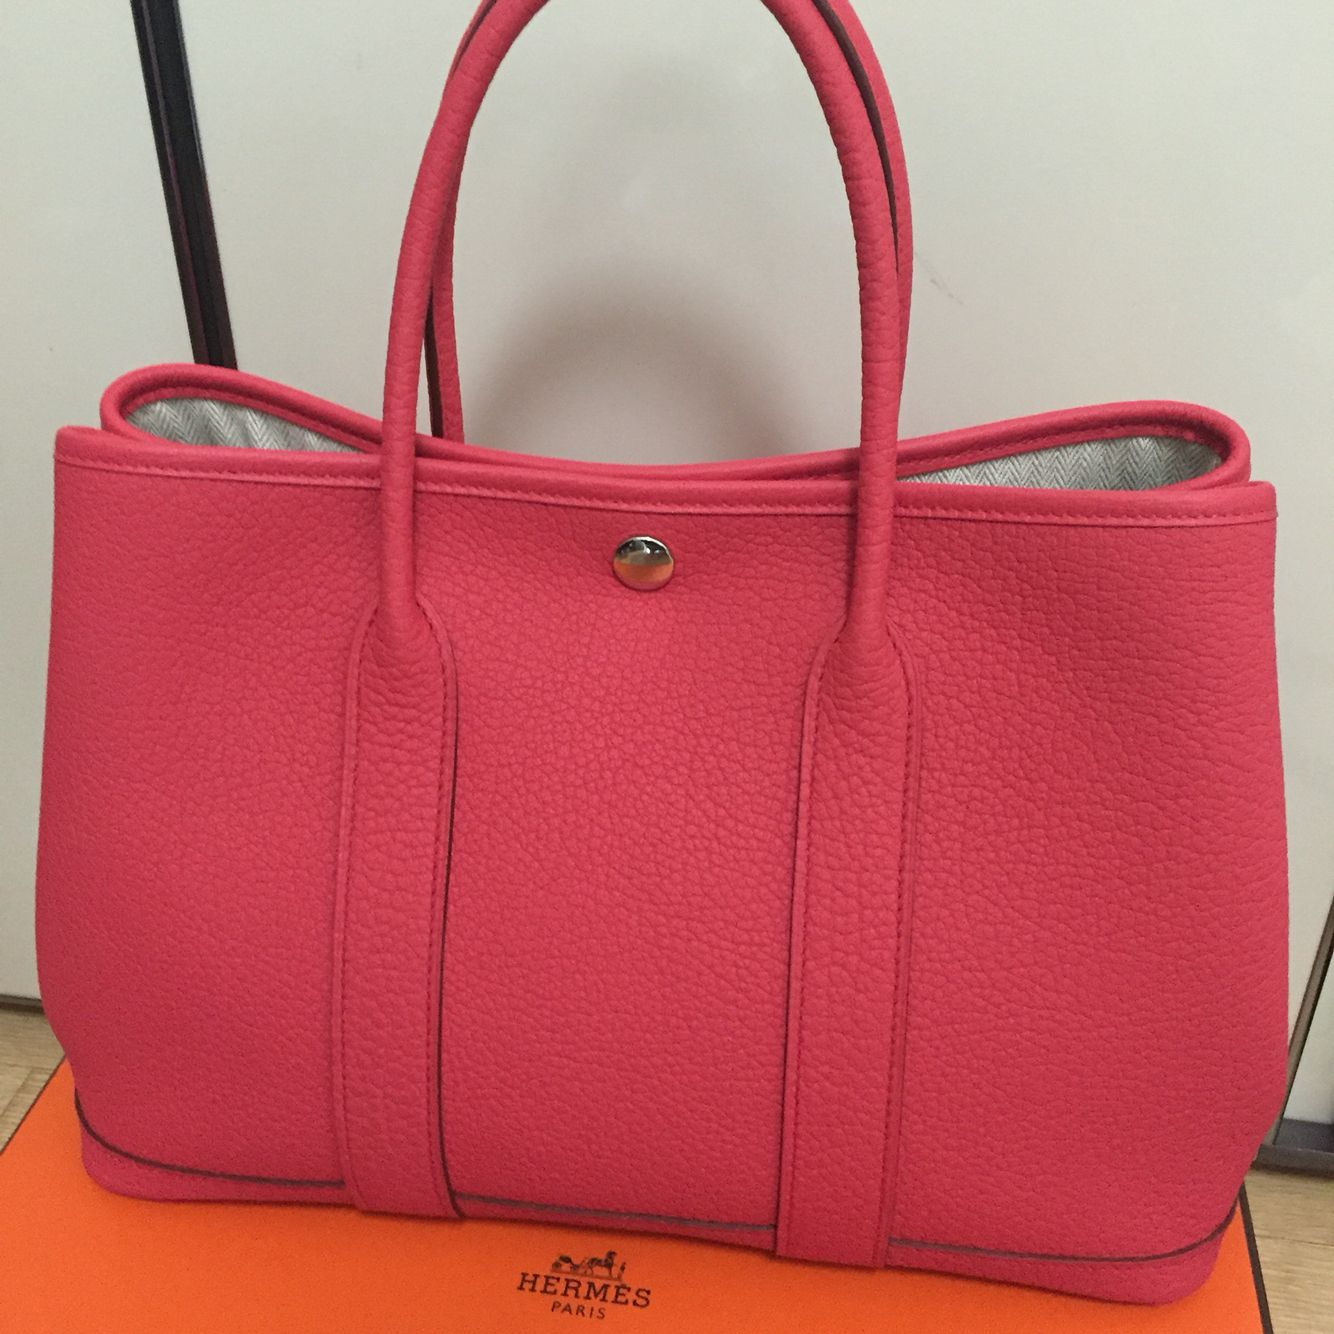 17c12b039fd Hermes garden party 30 bougainvillea | All things Hermès | Hermes ...